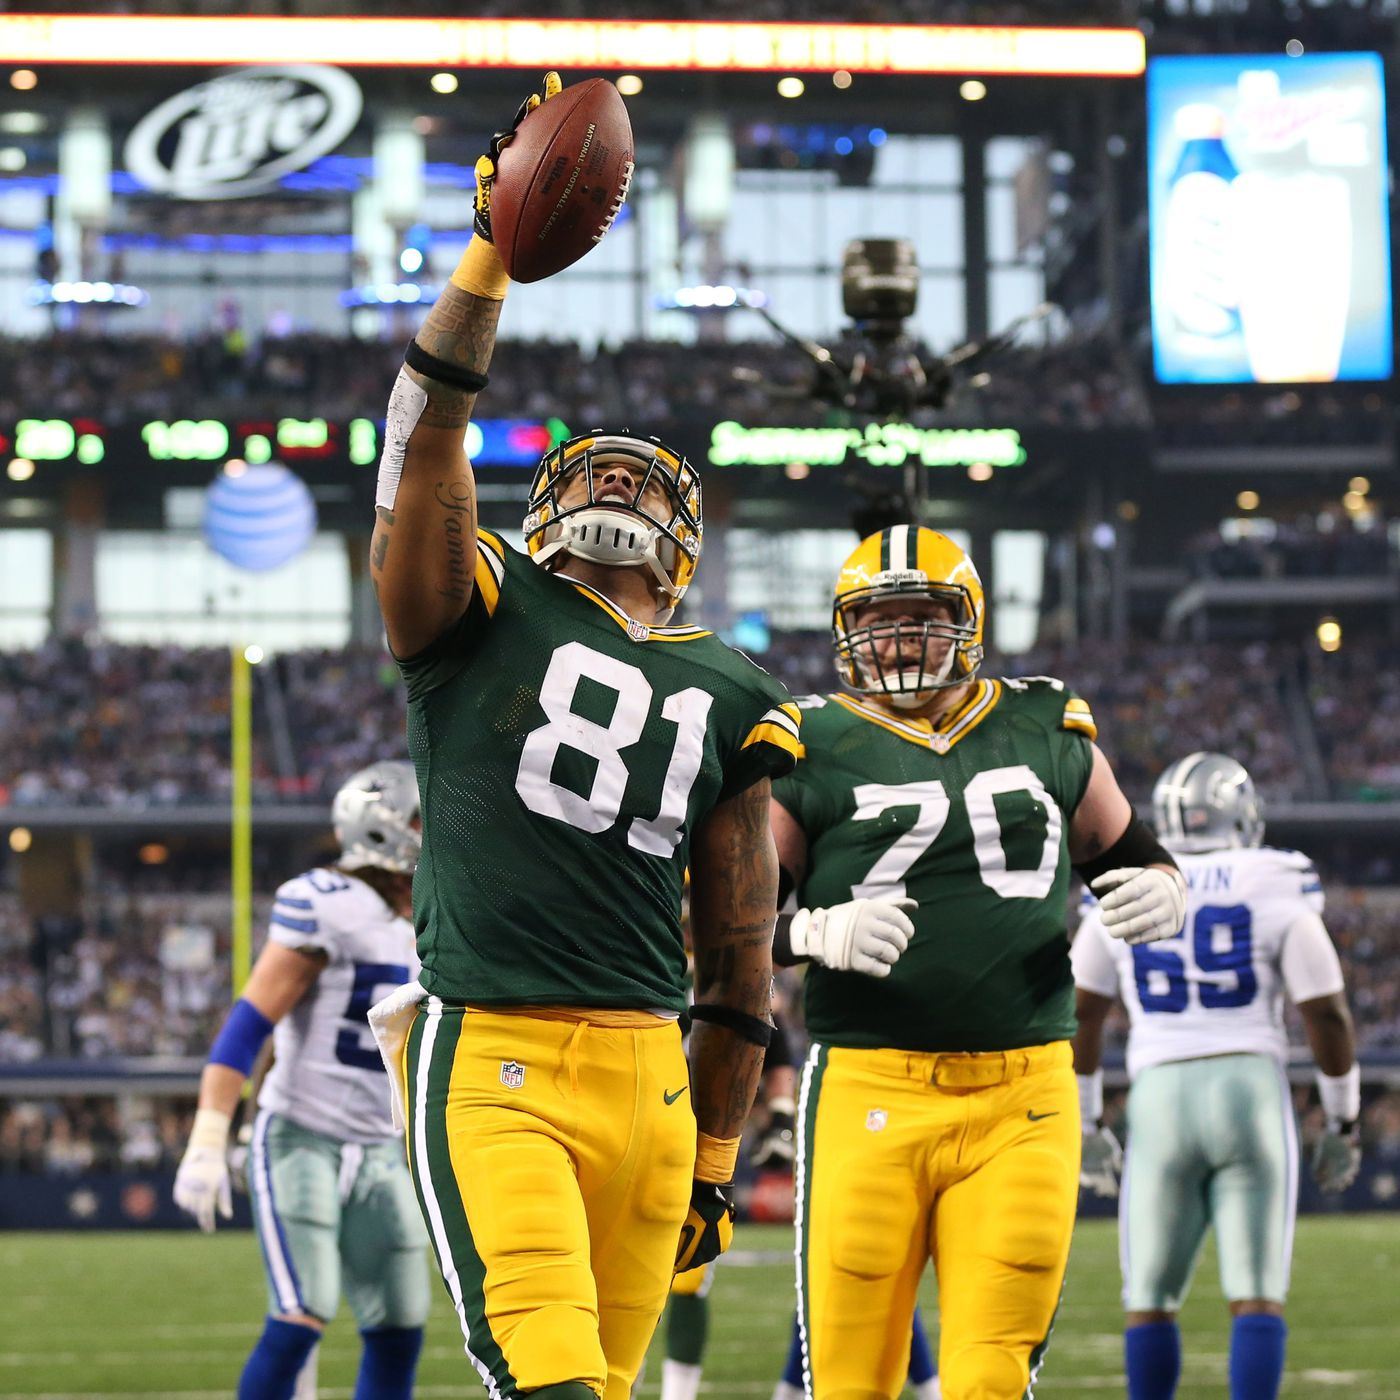 Packers Vs Cowboys Final Score 37 36 As Green Bay Completes Epic Comeback Acme Packing Company